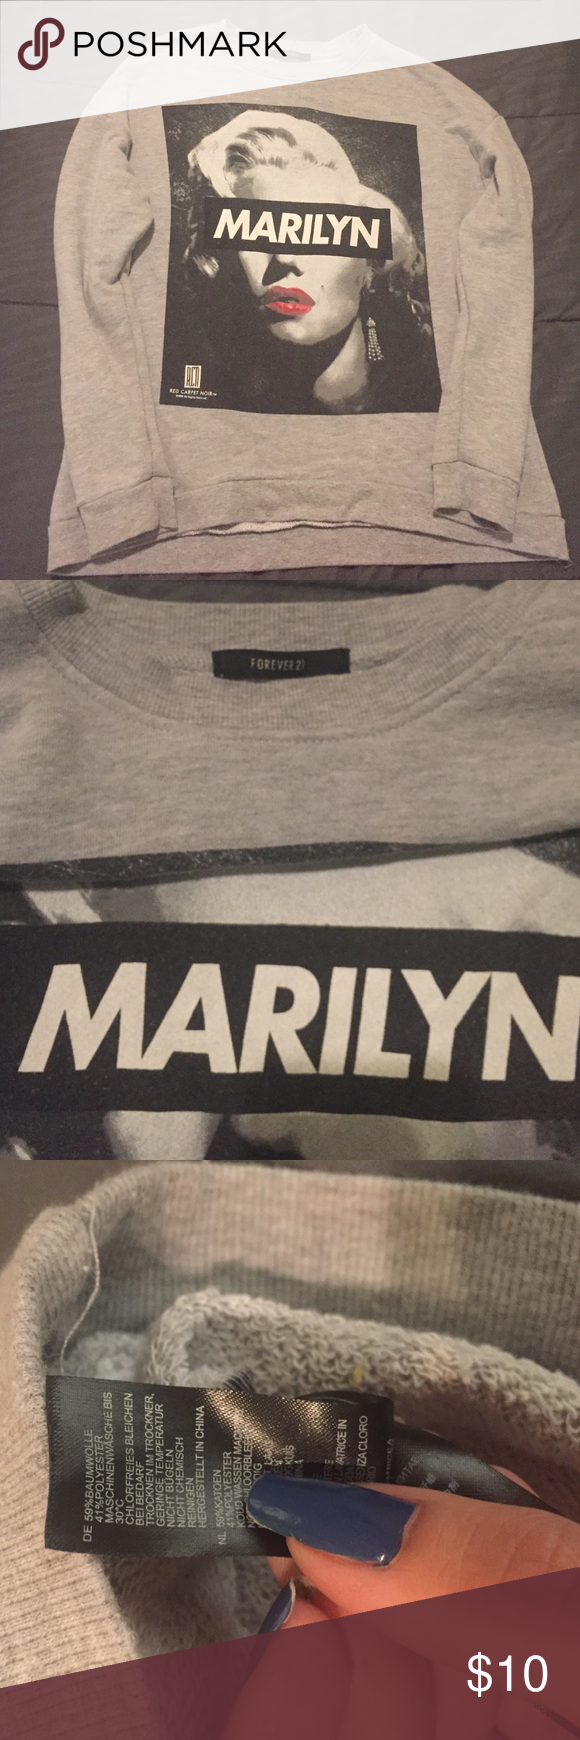 Forever 21 Marilyn Sweater. Forever 21 Marilyn Sweater. Size L. Perfect condition. Forever 21 Sweaters